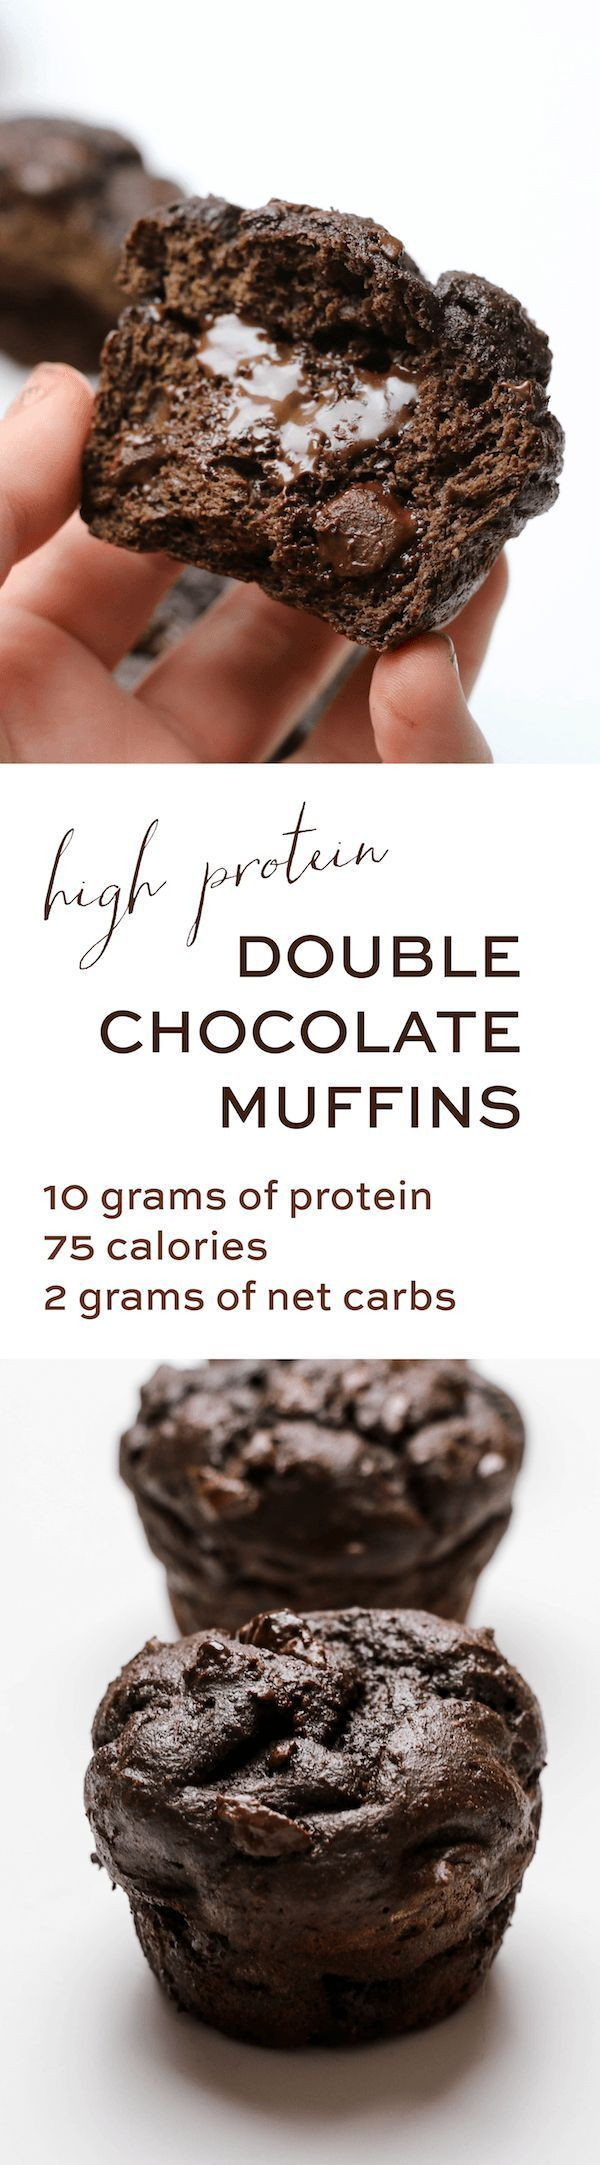 High Protein Double Chocolate Muffins | They may look insanely decadent, but these yummy muffins are actually pretty healthy!